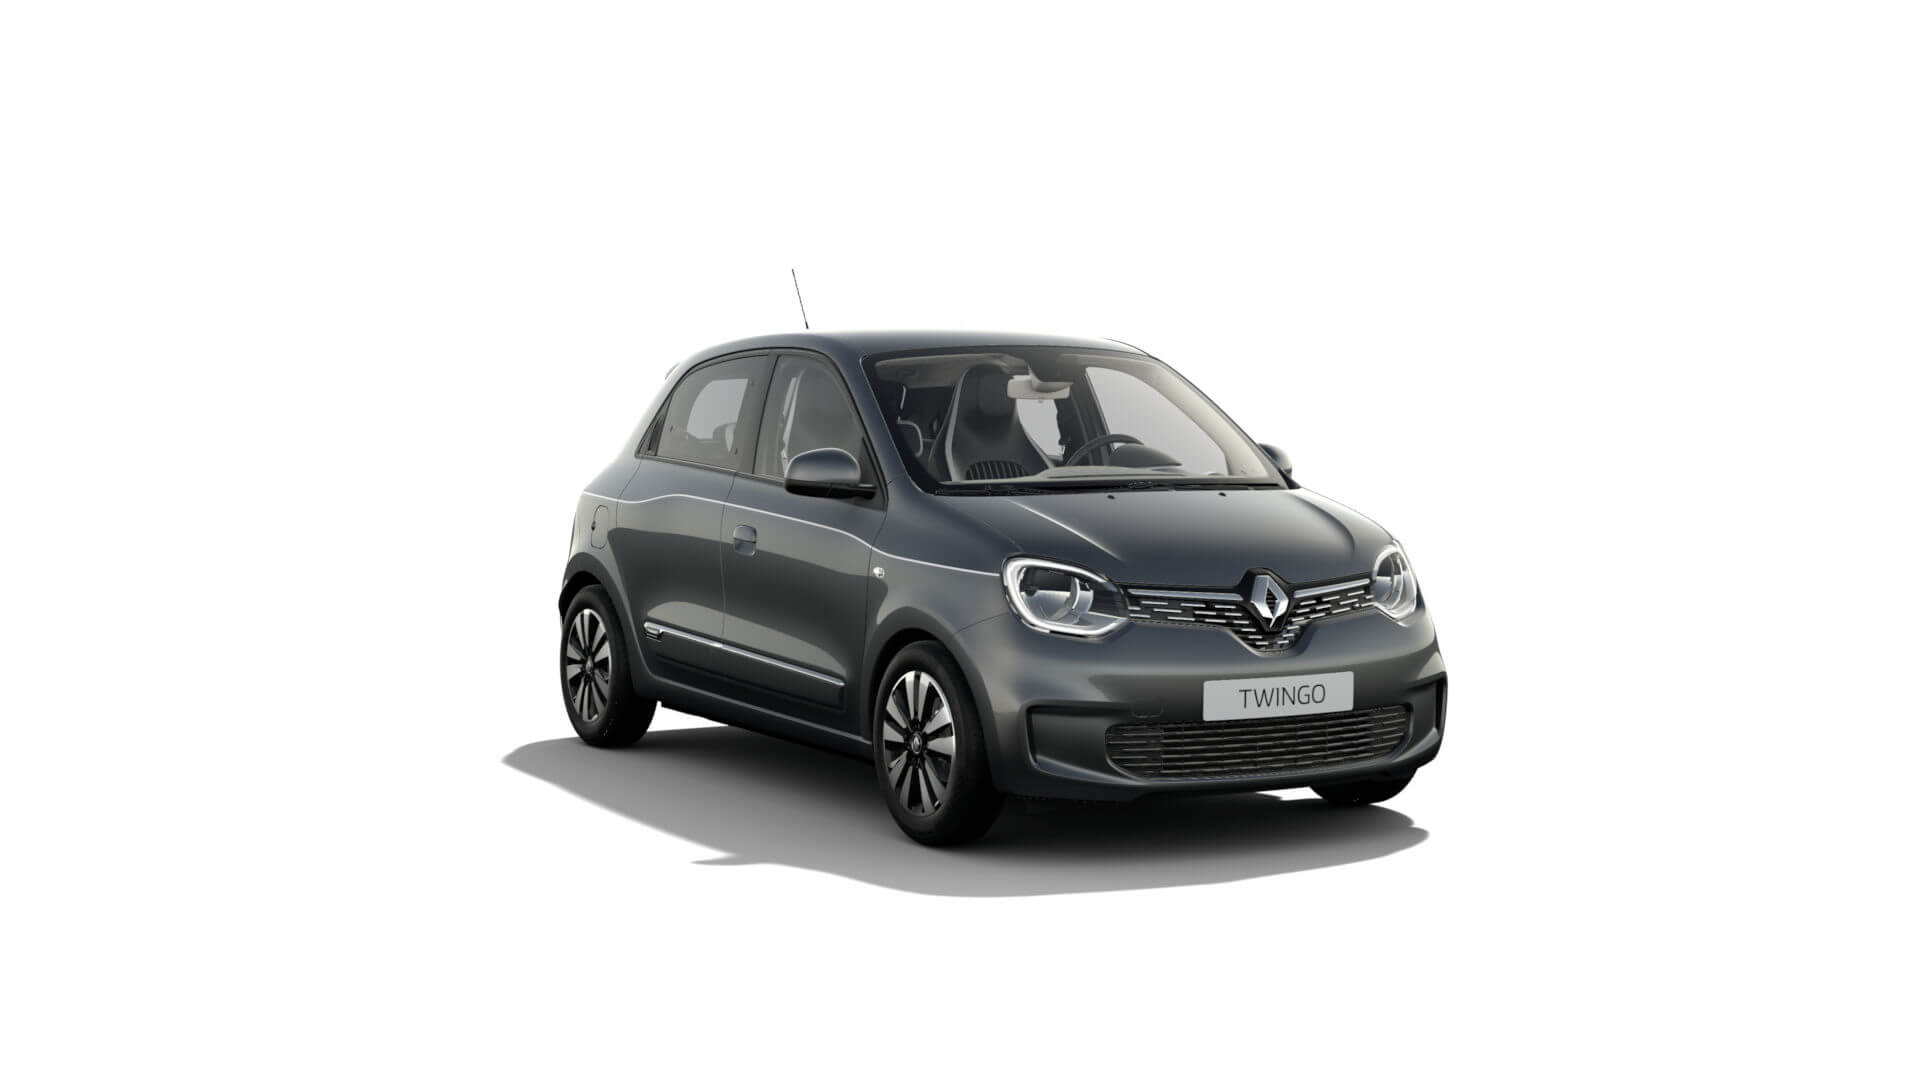 Automodell Anthrazit - Renault Twingo - Renault Ahrens Hannover